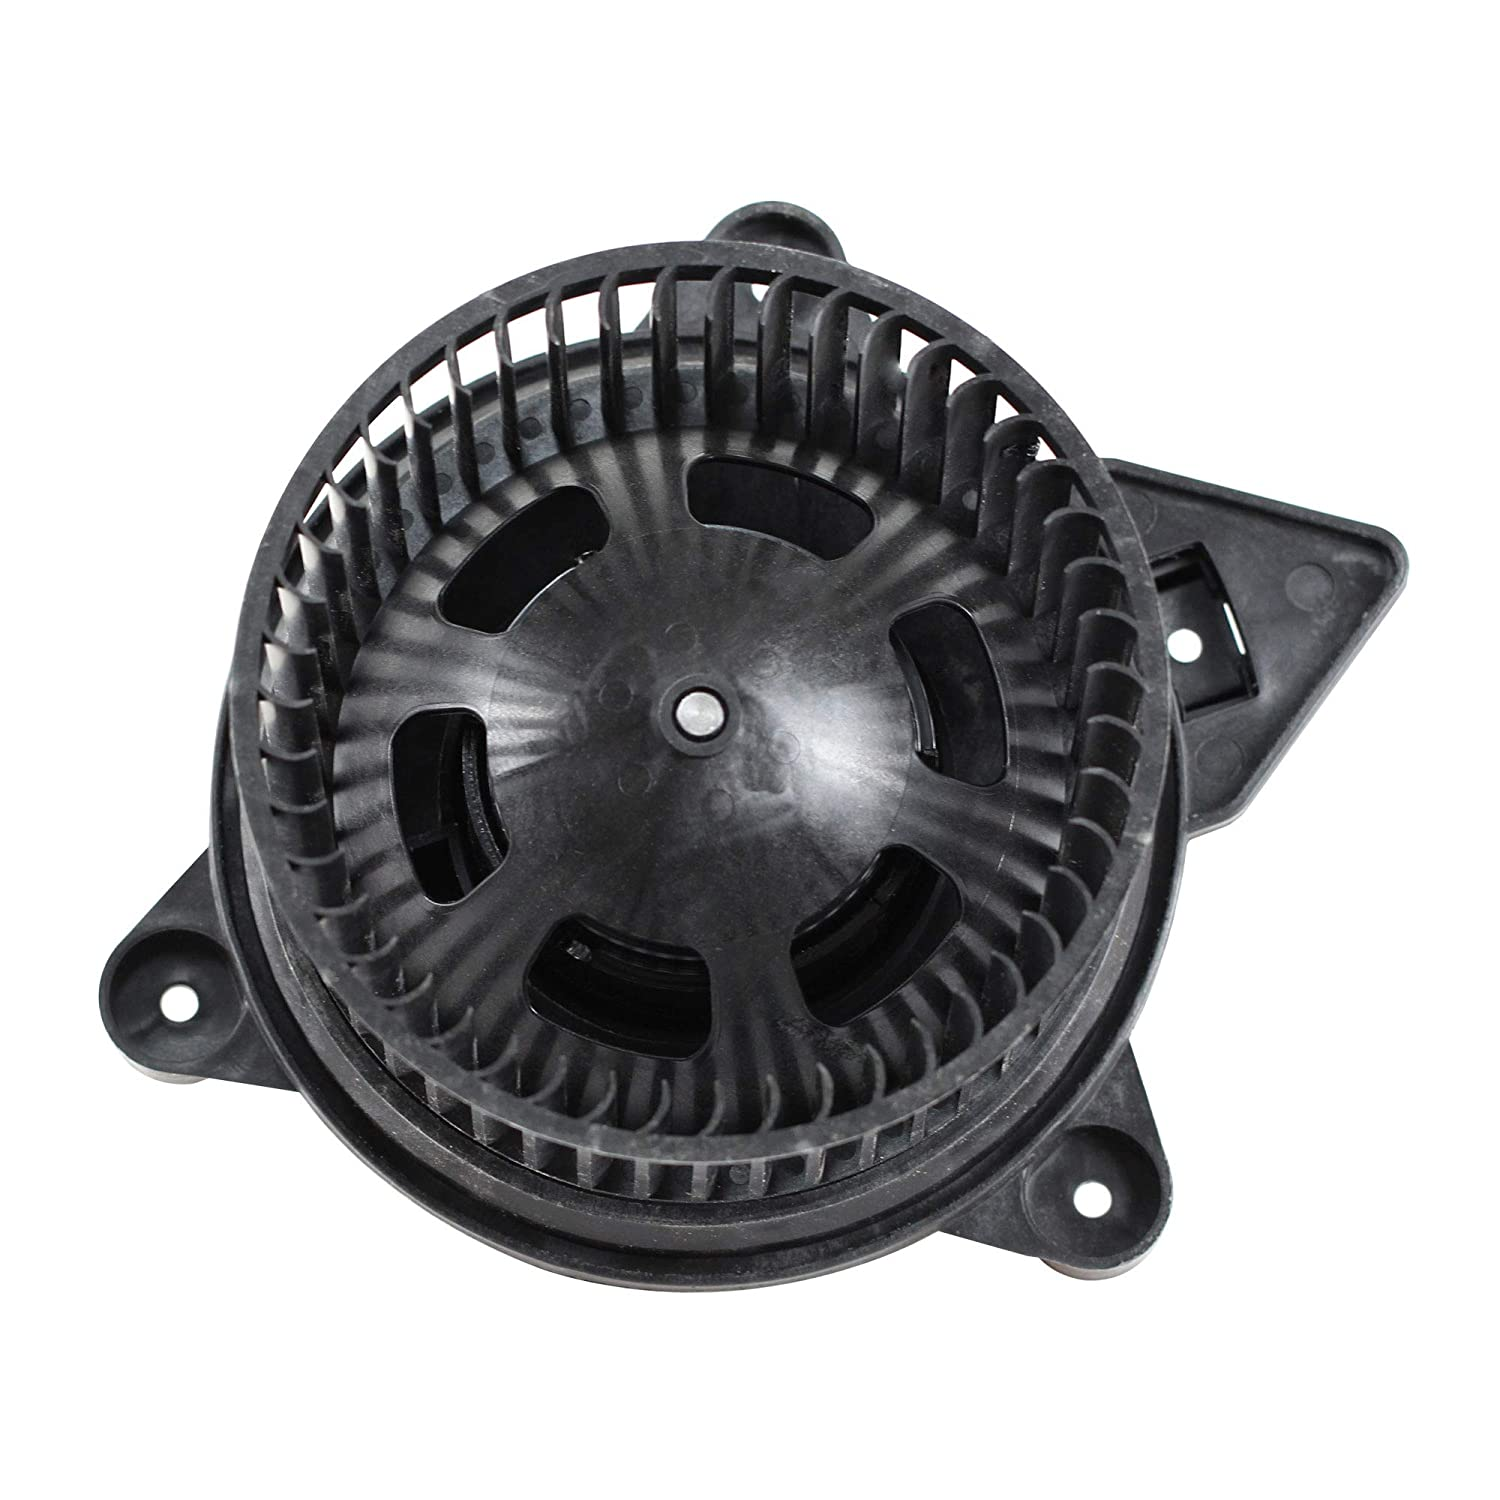 DODGE DURANGO 2009-2004 5061381AA 700167 BOXI Blower Motor Fan Assembly for CHRYSLER ASPEN 2009-2007